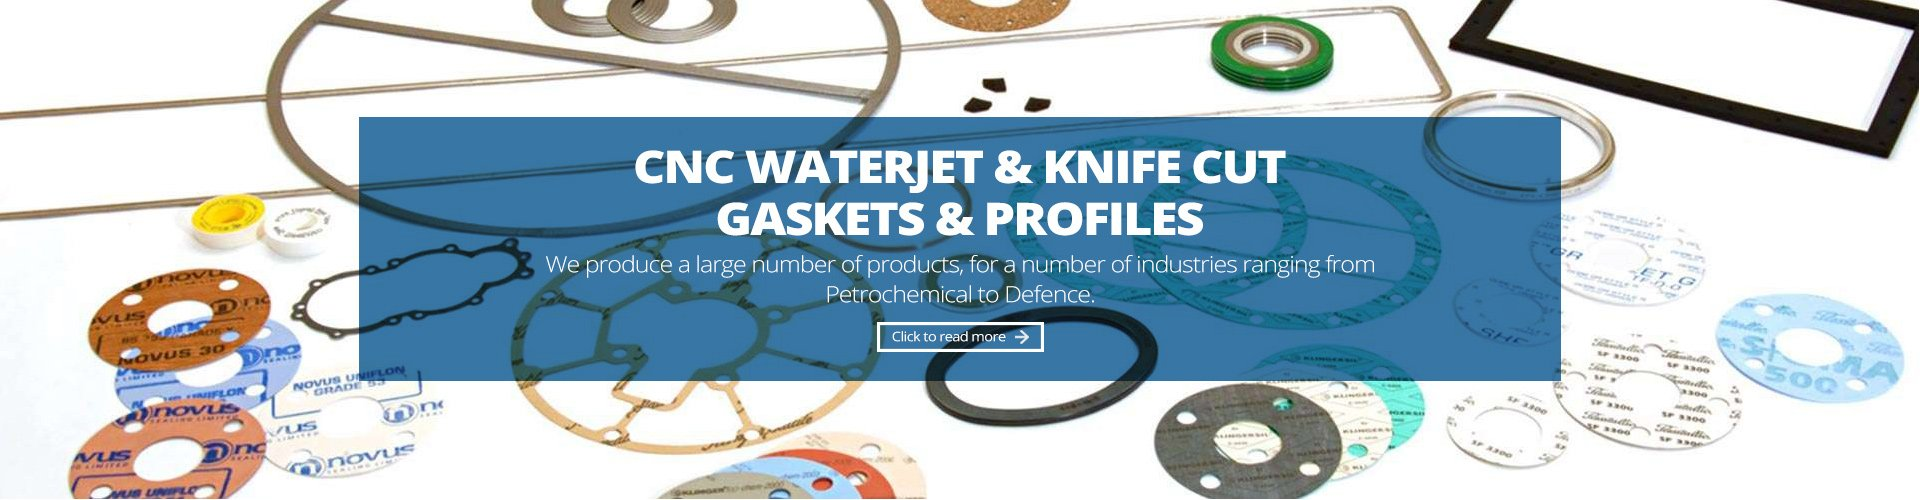 cnc waterjet and knife cut gaskets and profiles